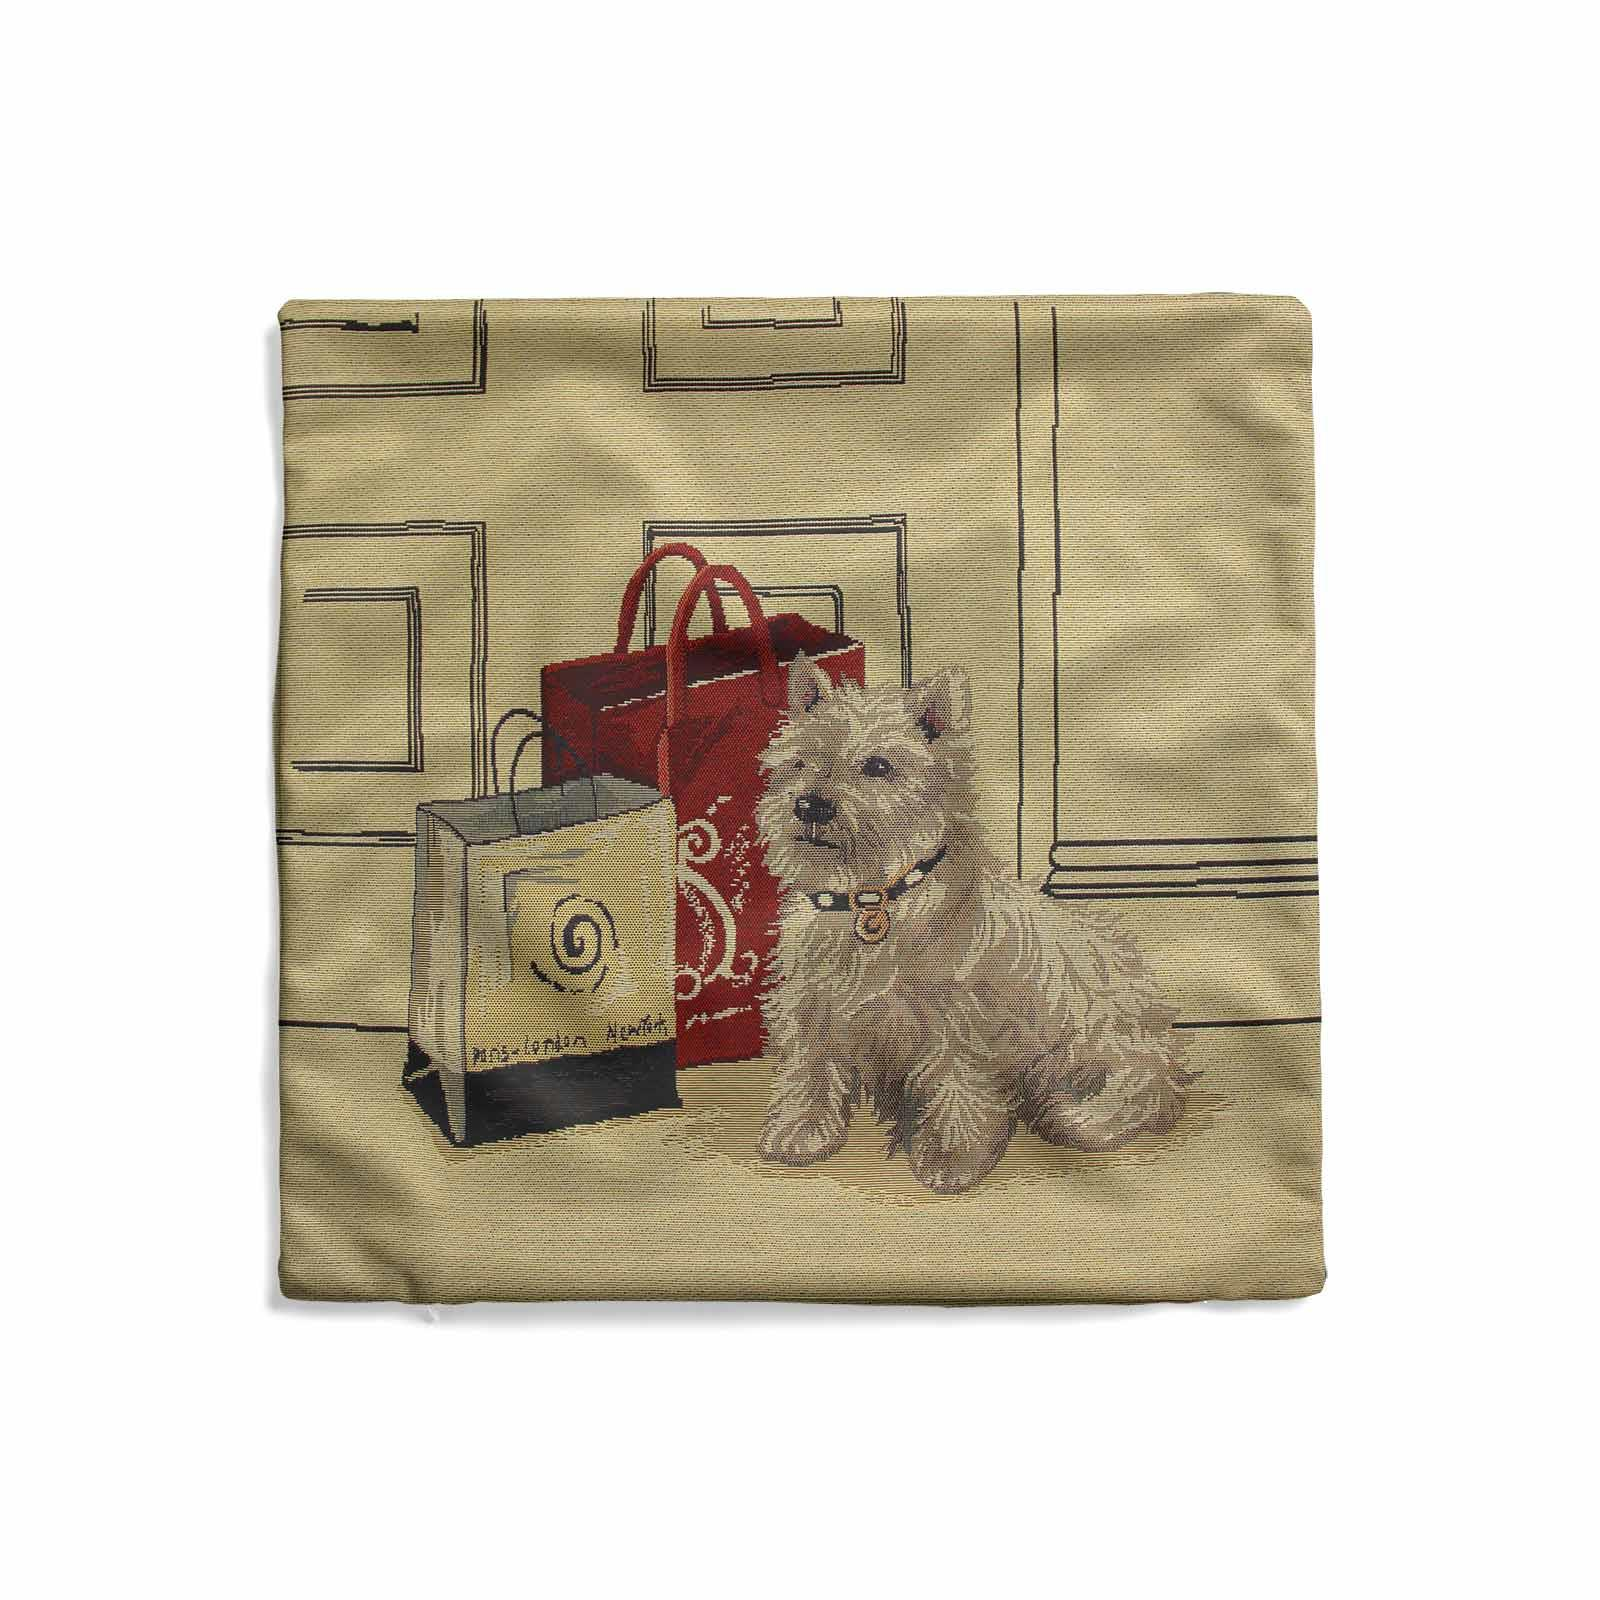 Tapestry-Cushion-Covers-Vintage-Pillow-Cover-Collection-18-034-45cm-Filled-Cushions thumbnail 170